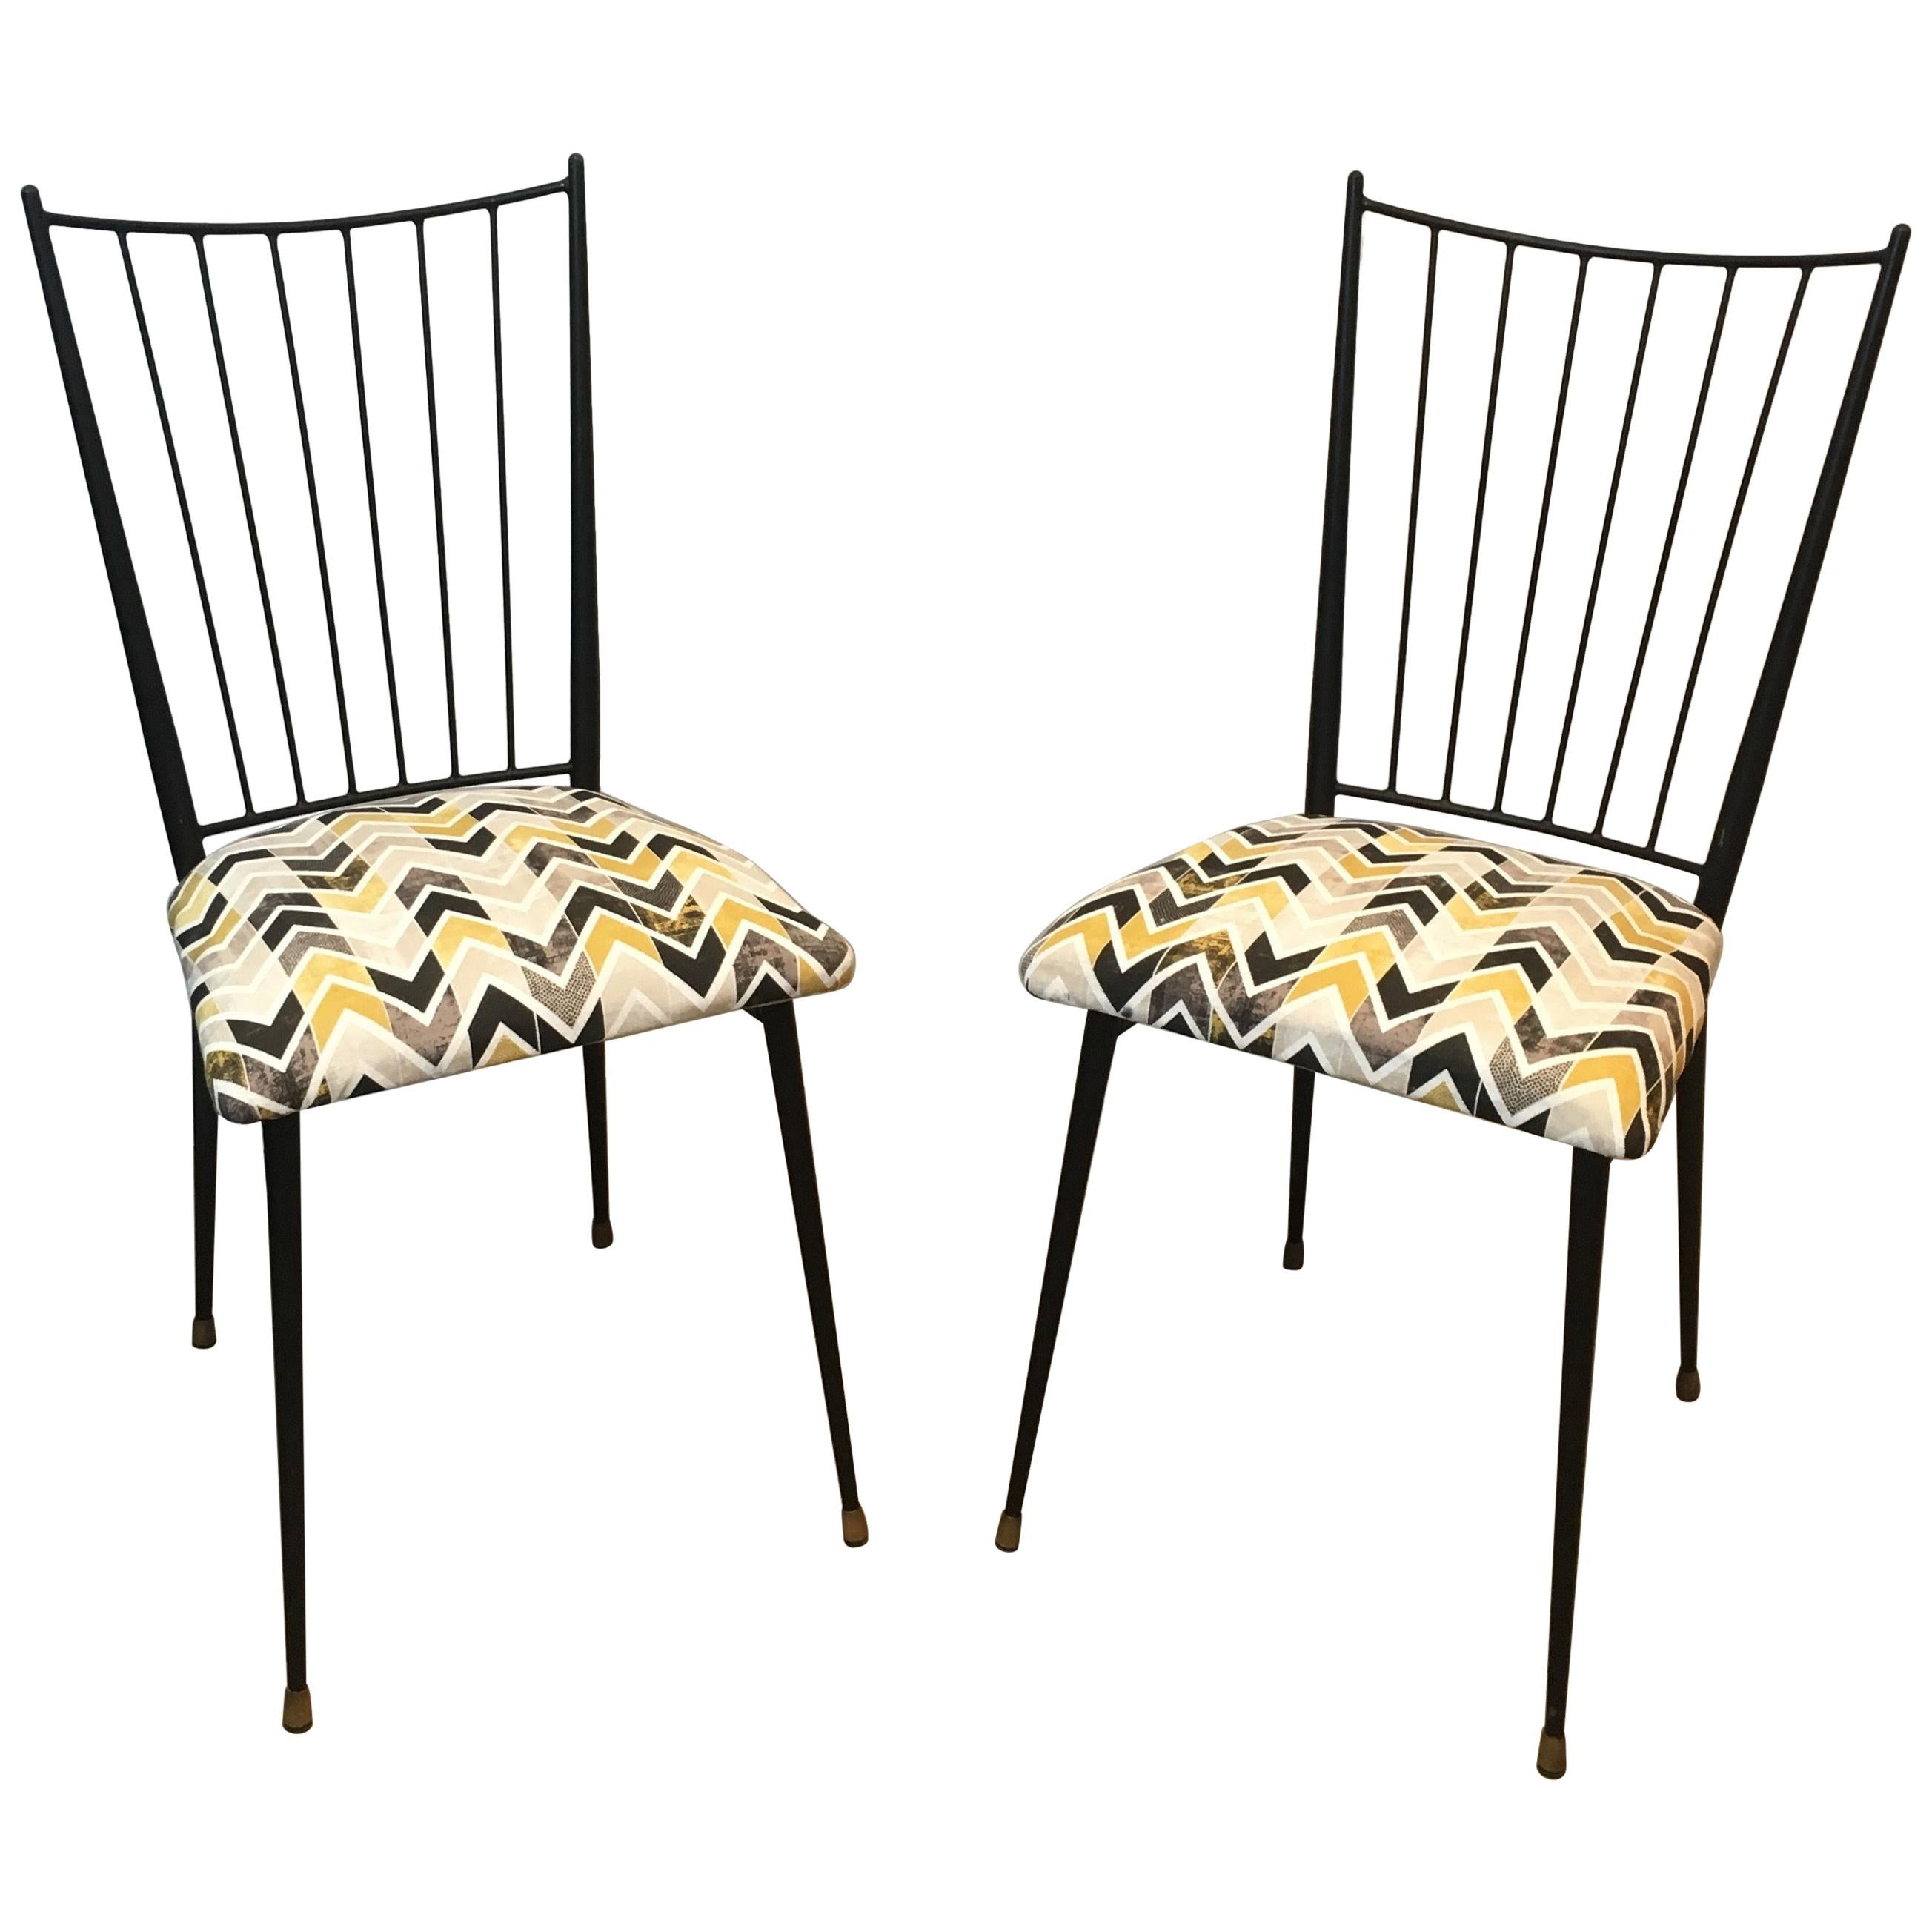 Colette Gueden, Pair of Black Lacquered Chairs, French, circa 1950